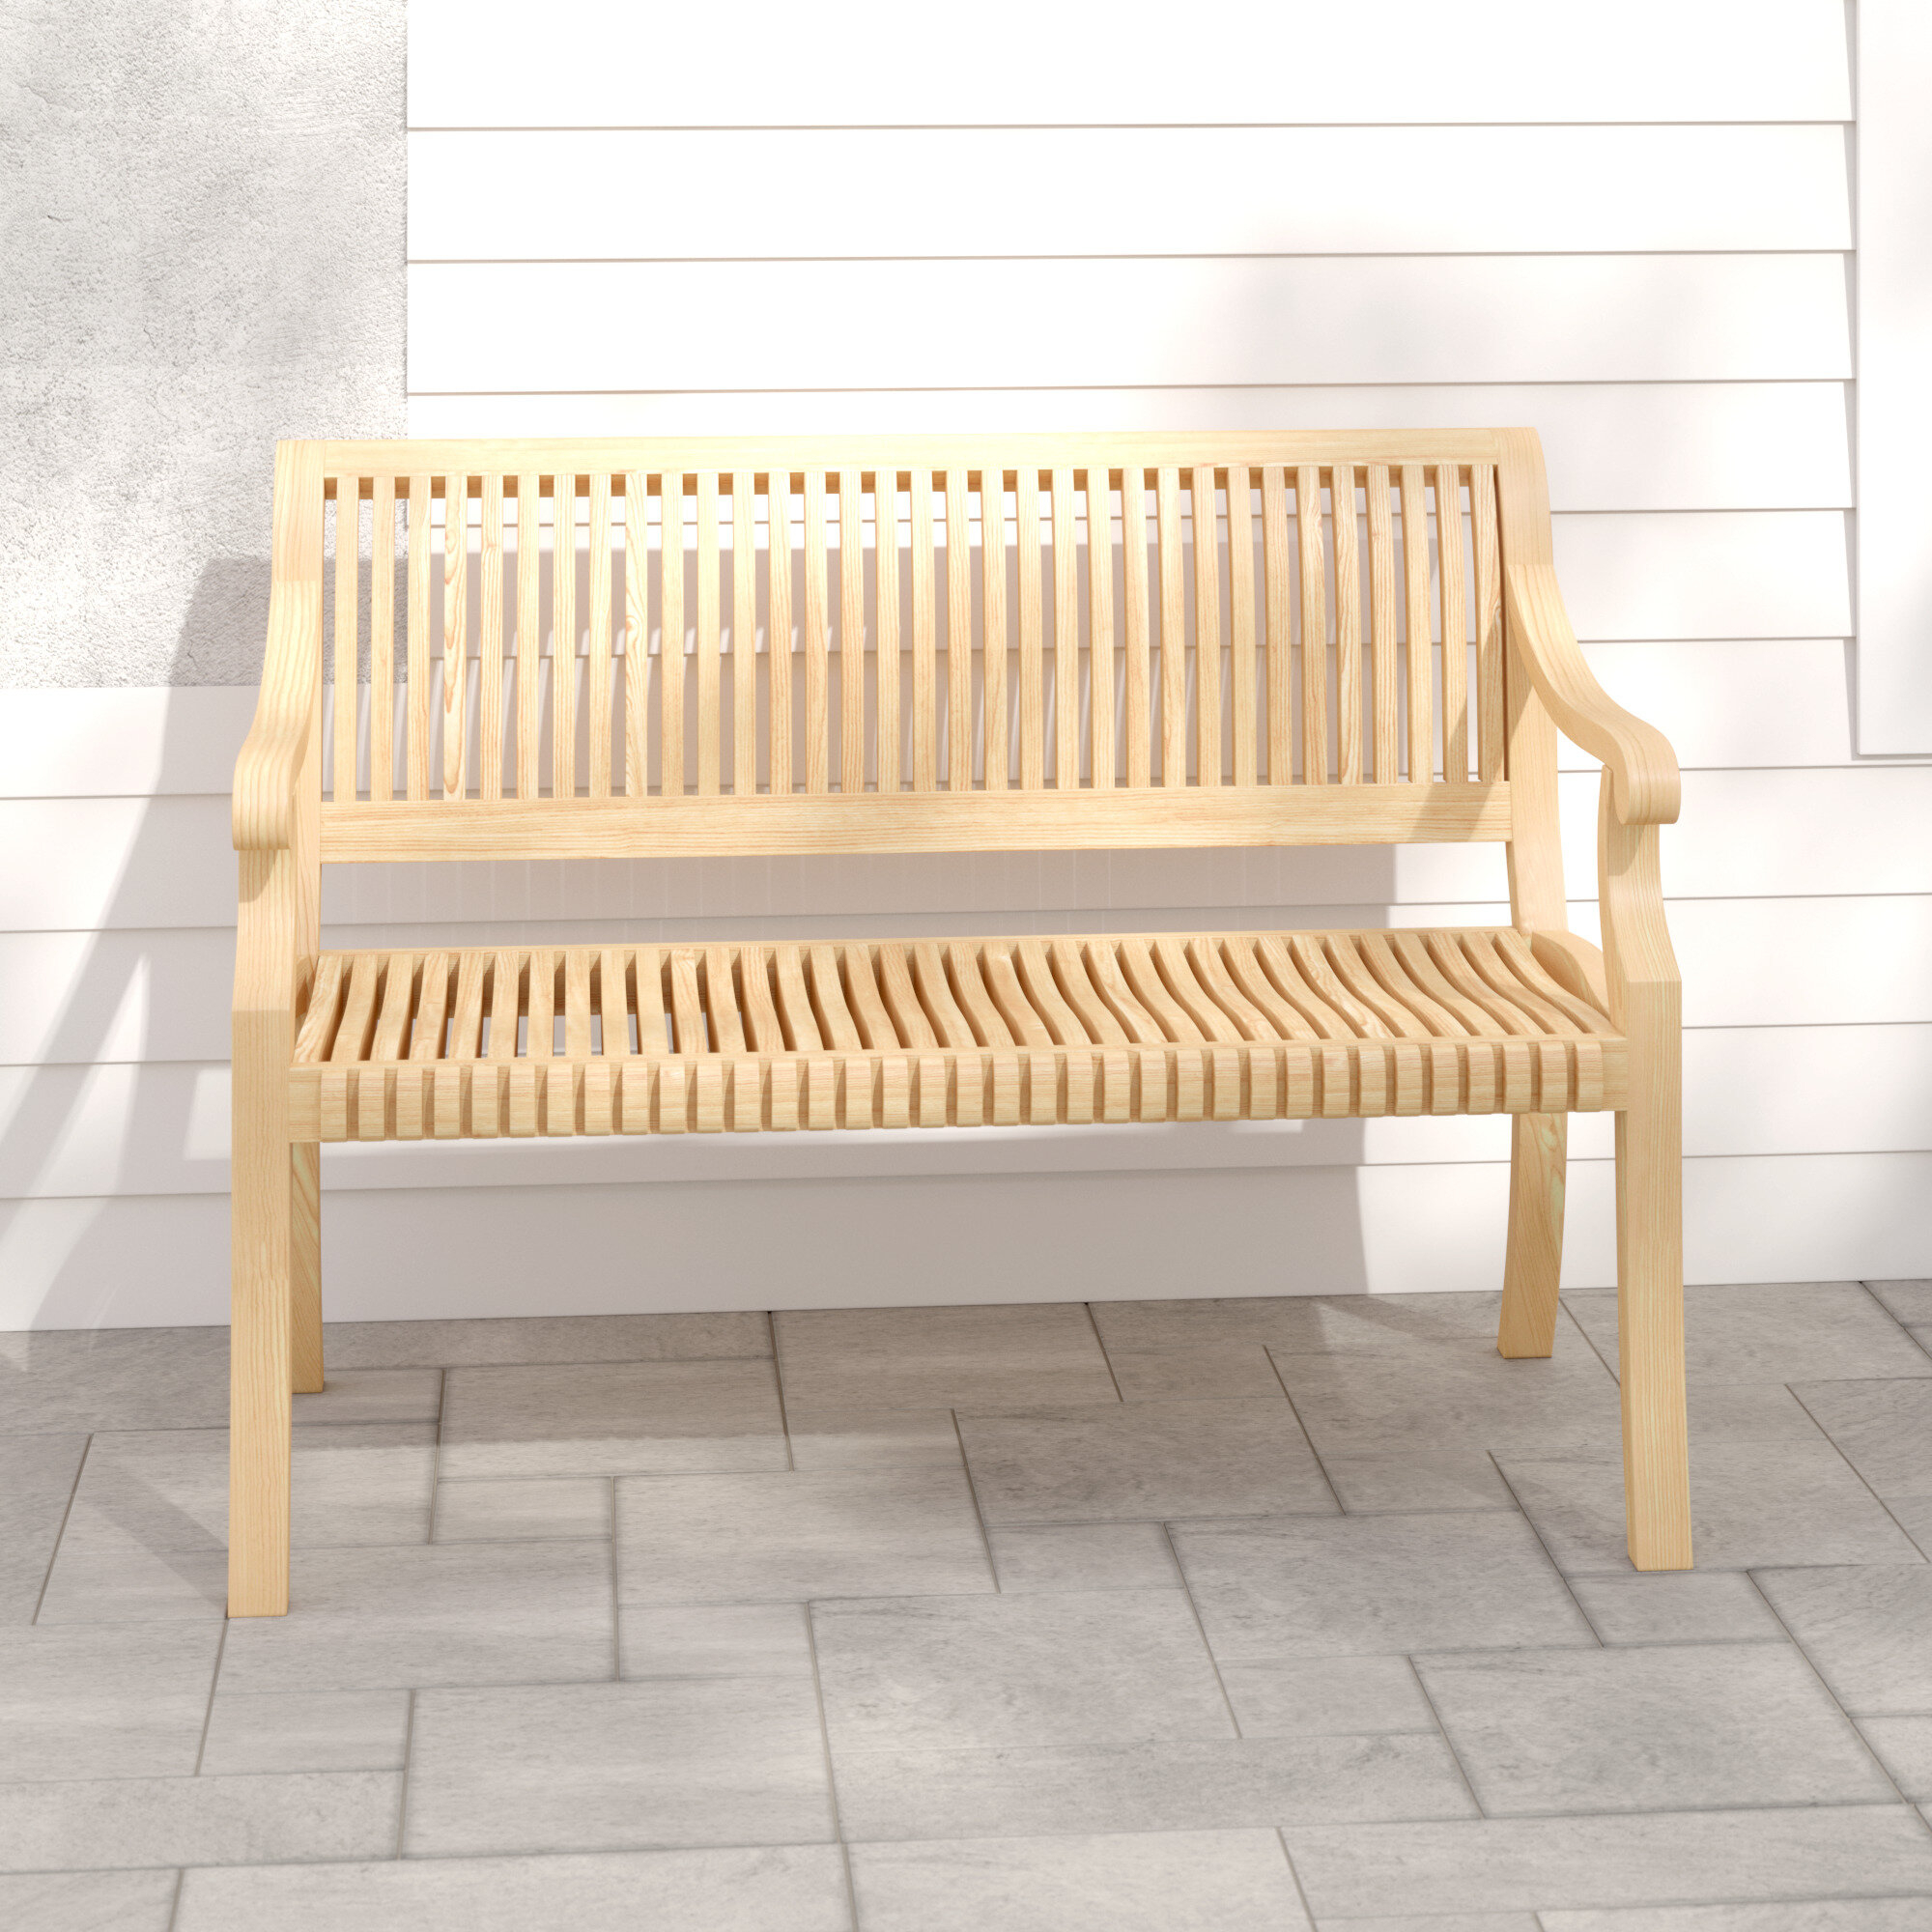 Khari Teak Garden Bench Pertaining To Hampstead Teak Garden Benches (View 11 of 25)